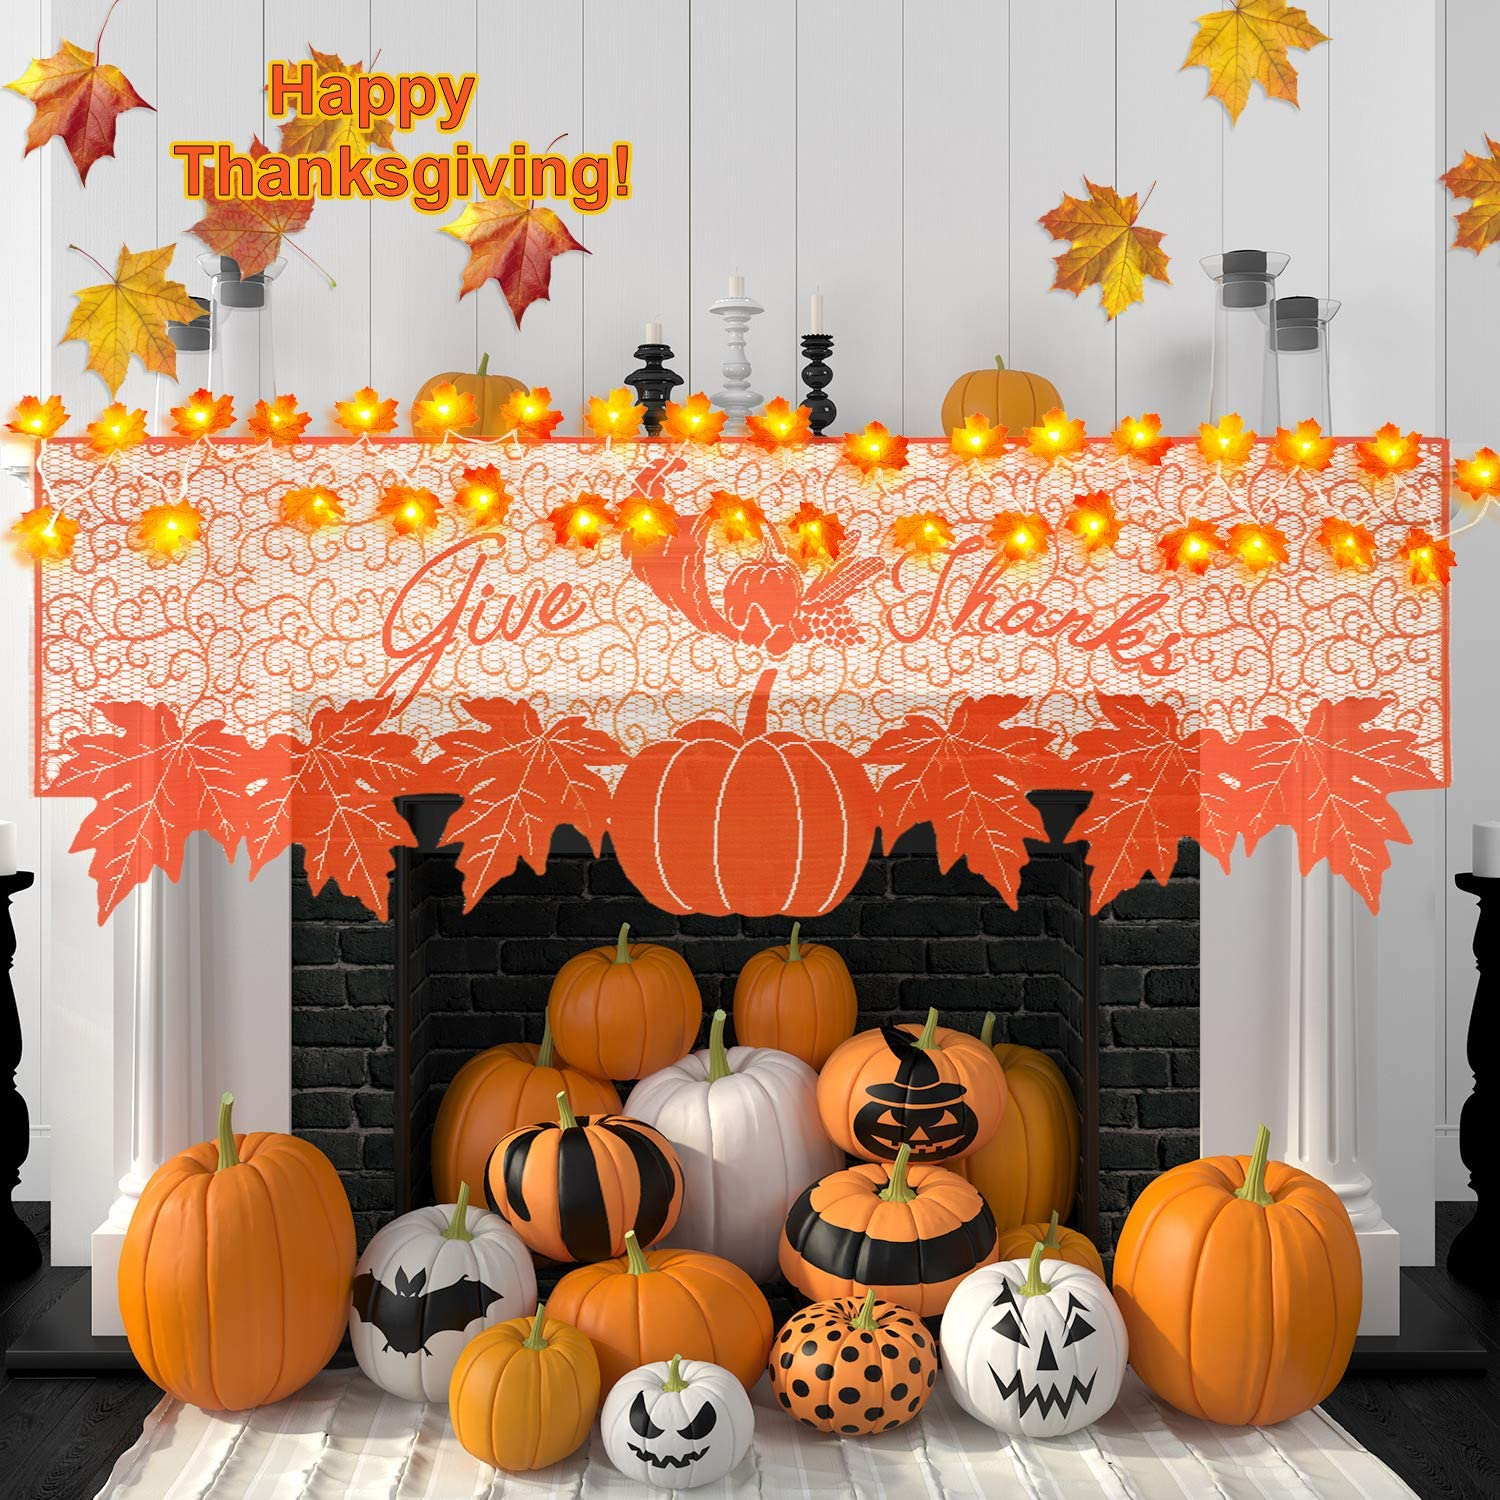 Fall Decoration Thanksgiving Decor Fireplace Scarf Maple Leaves Mantle Scarf Holiday Fireplace Decorations with Maple Leaves String Lights 20 LED Fall String Lights for Home Indoor Decoration